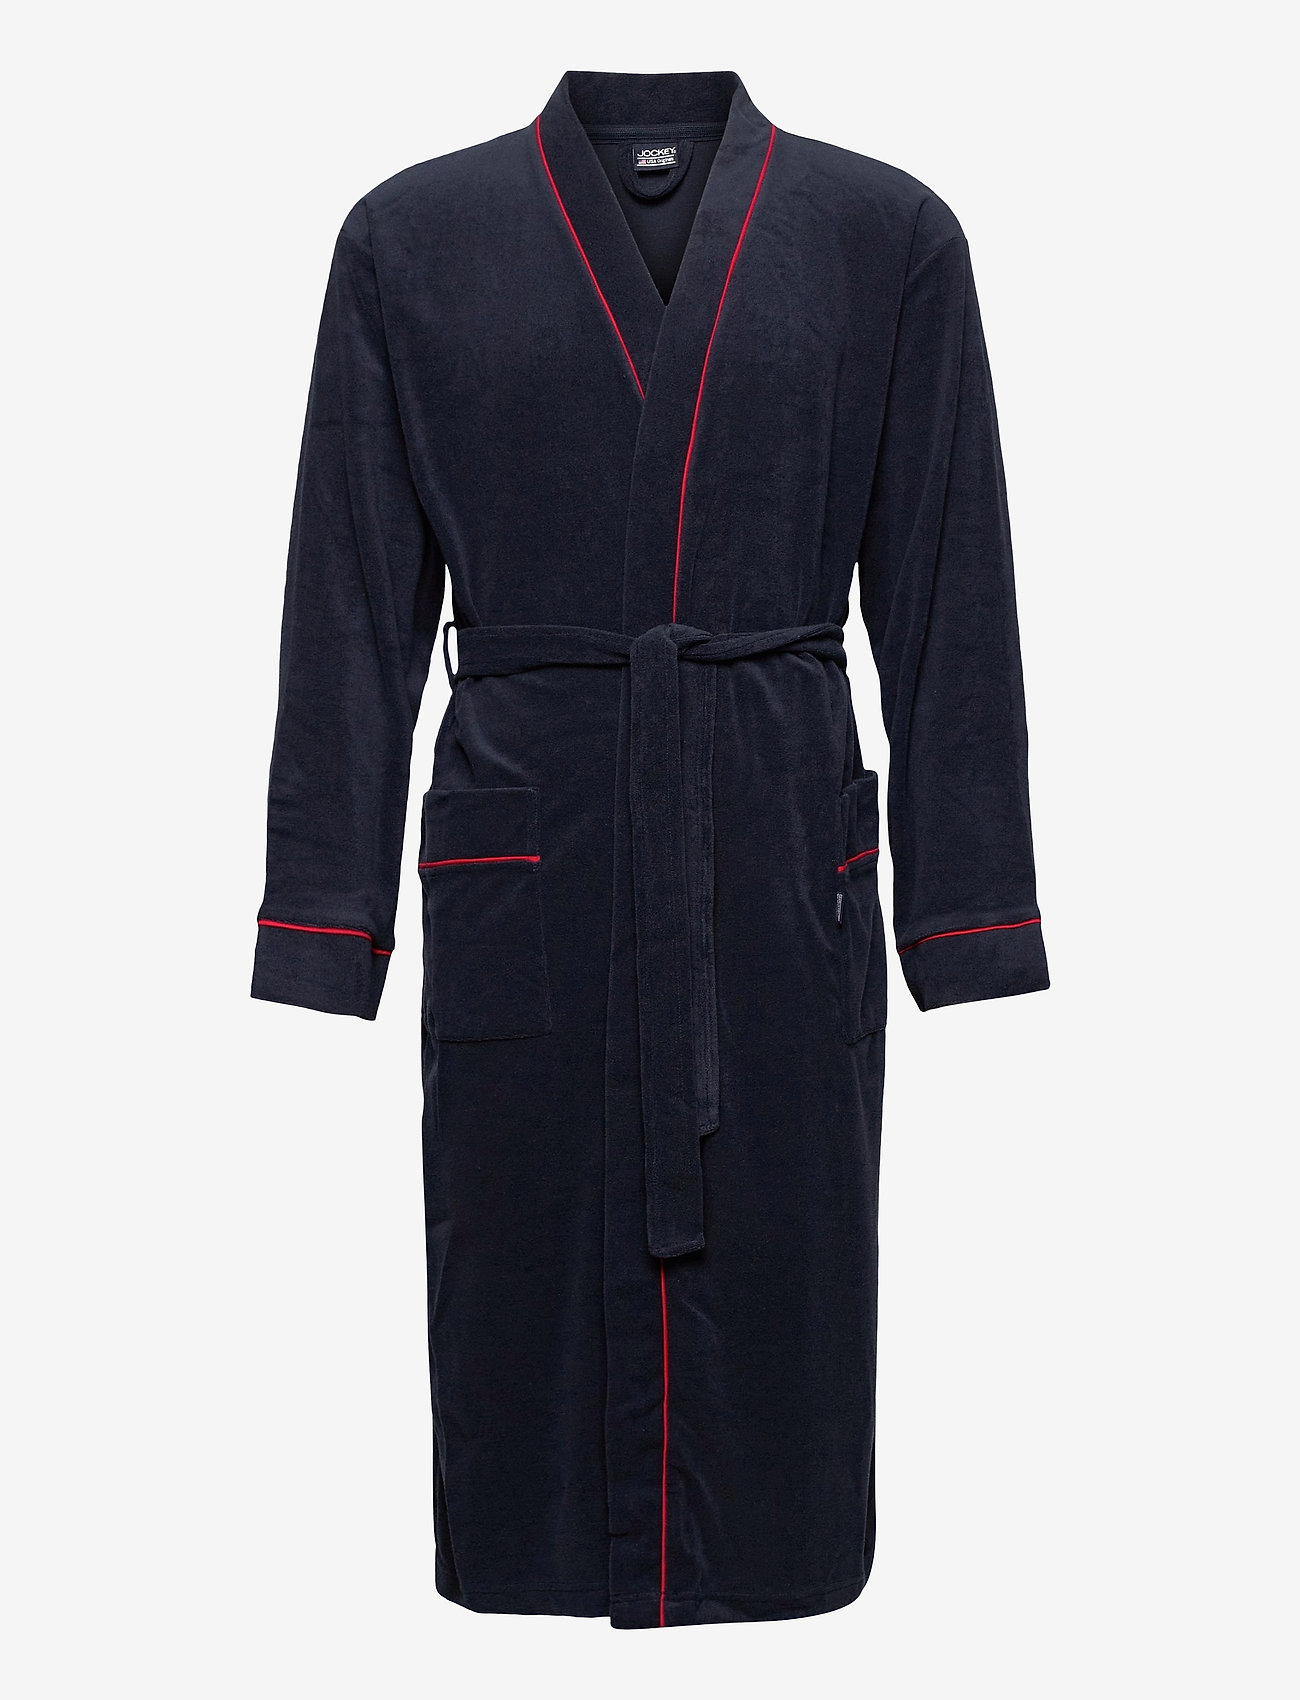 Jockey - Bath robe - badjassen - navy - 1